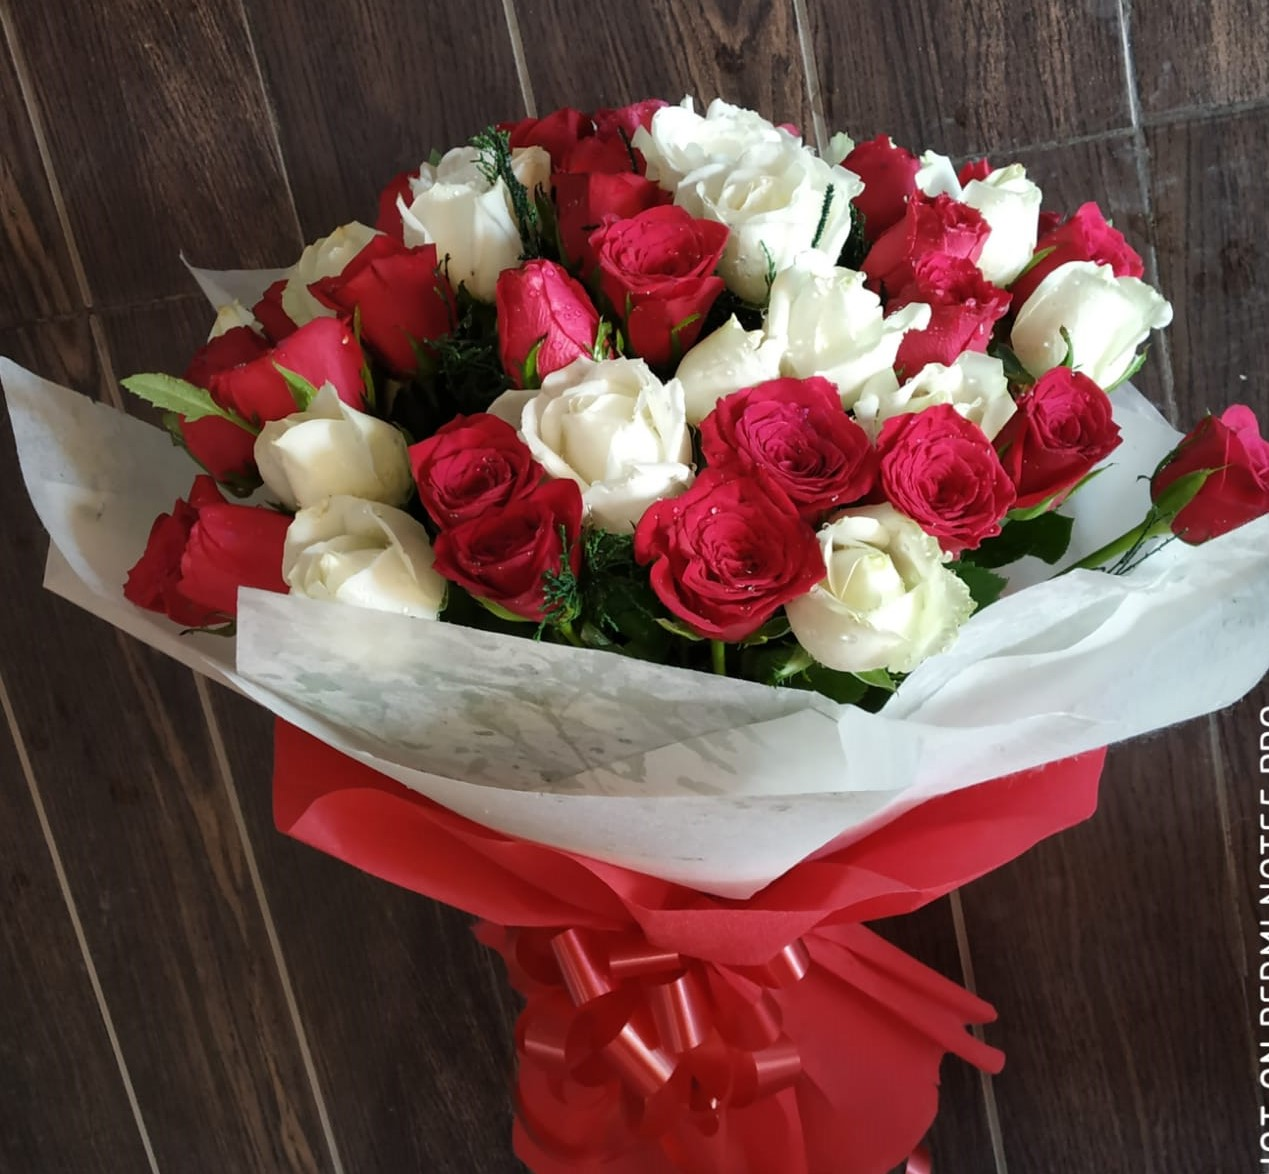 Flowers Delivery in Sector 22 GurgaonRed & White Roses in Duble Layer Packing